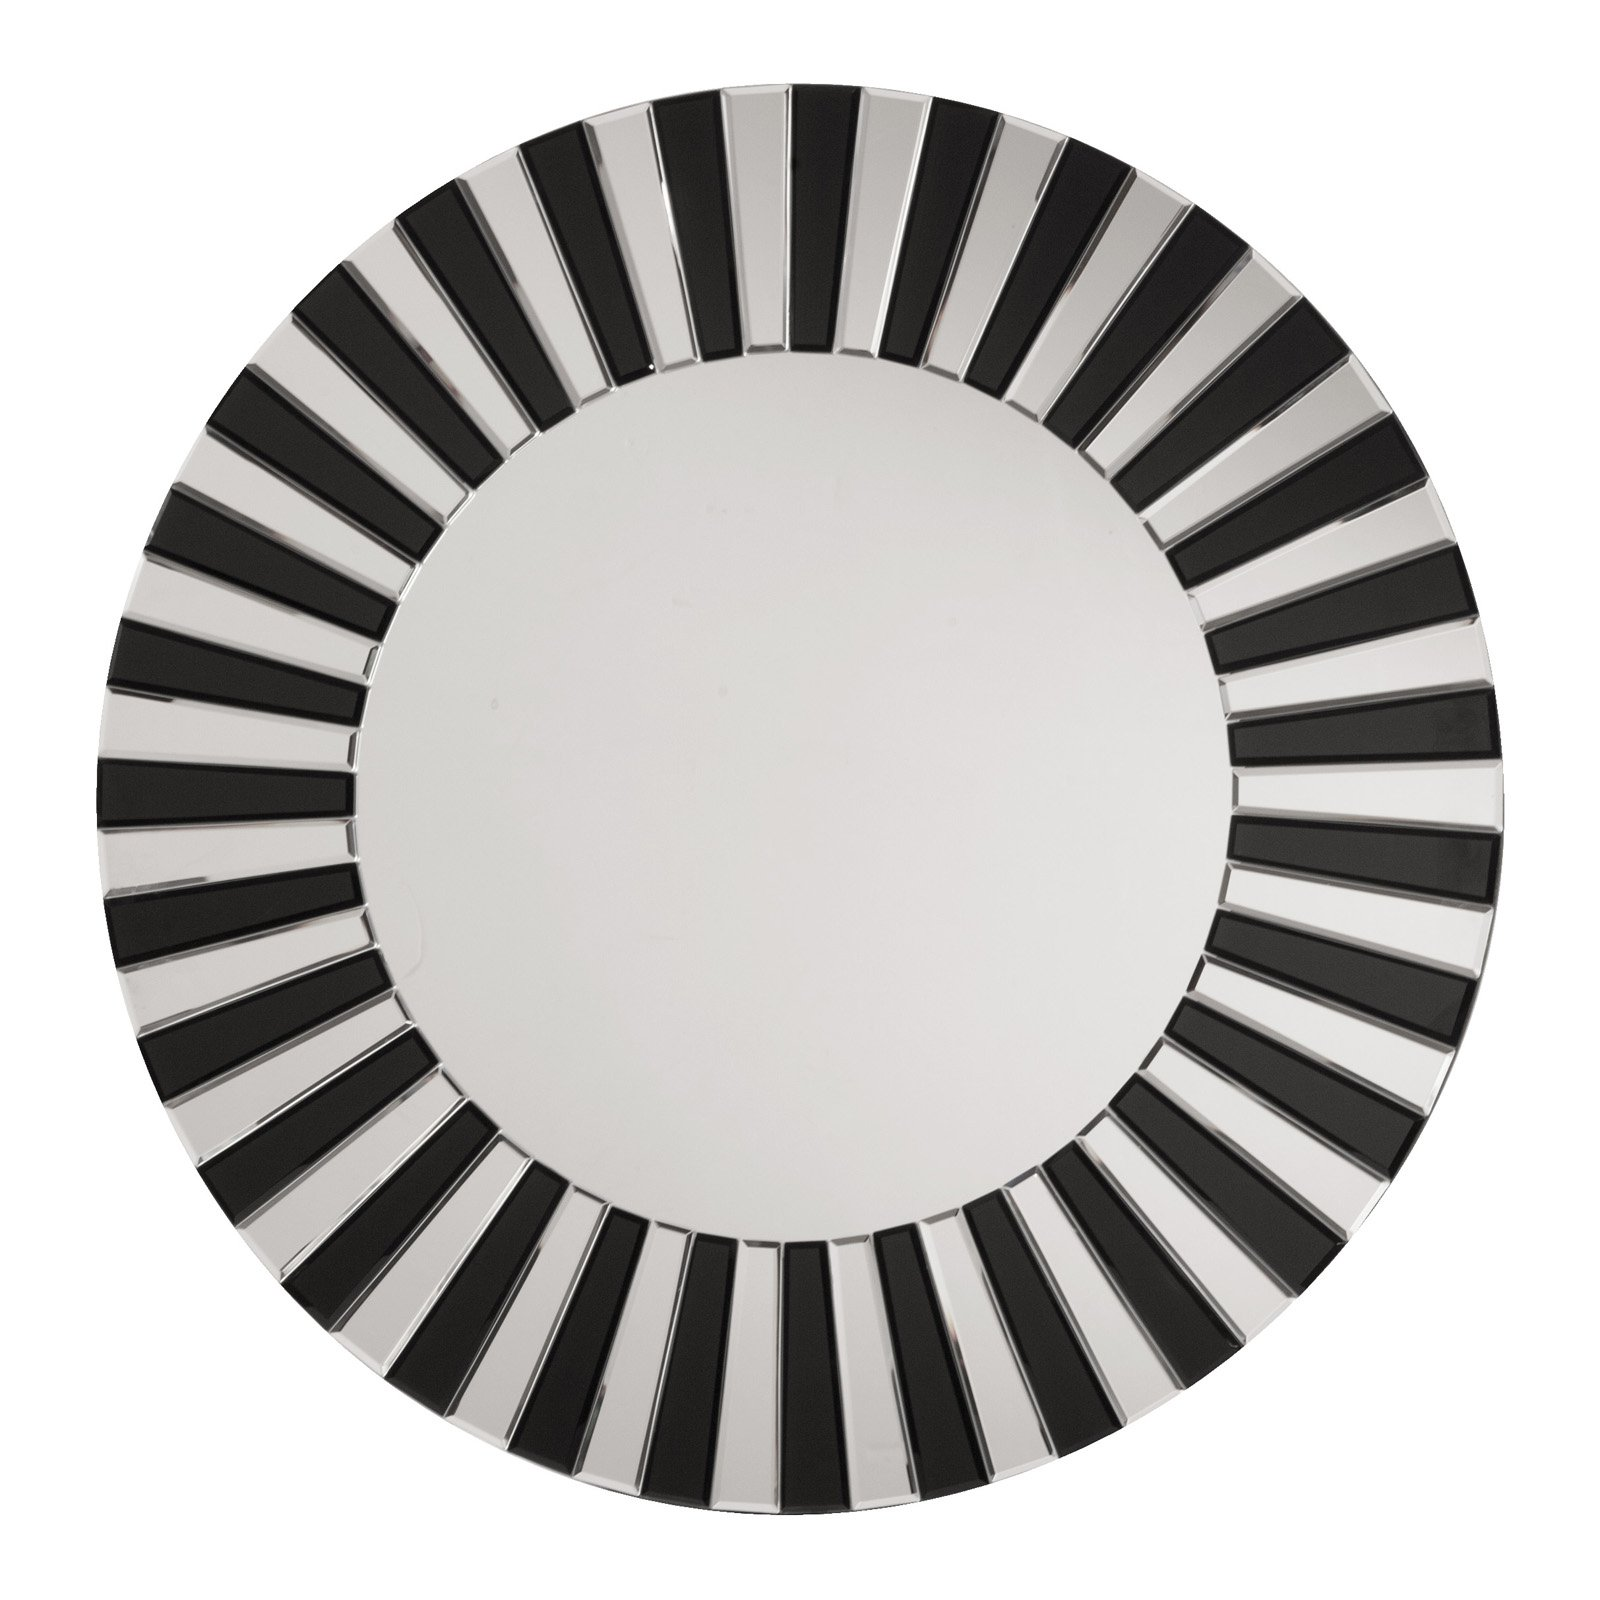 Jazz Note Round Wall Mirror with Black Glass